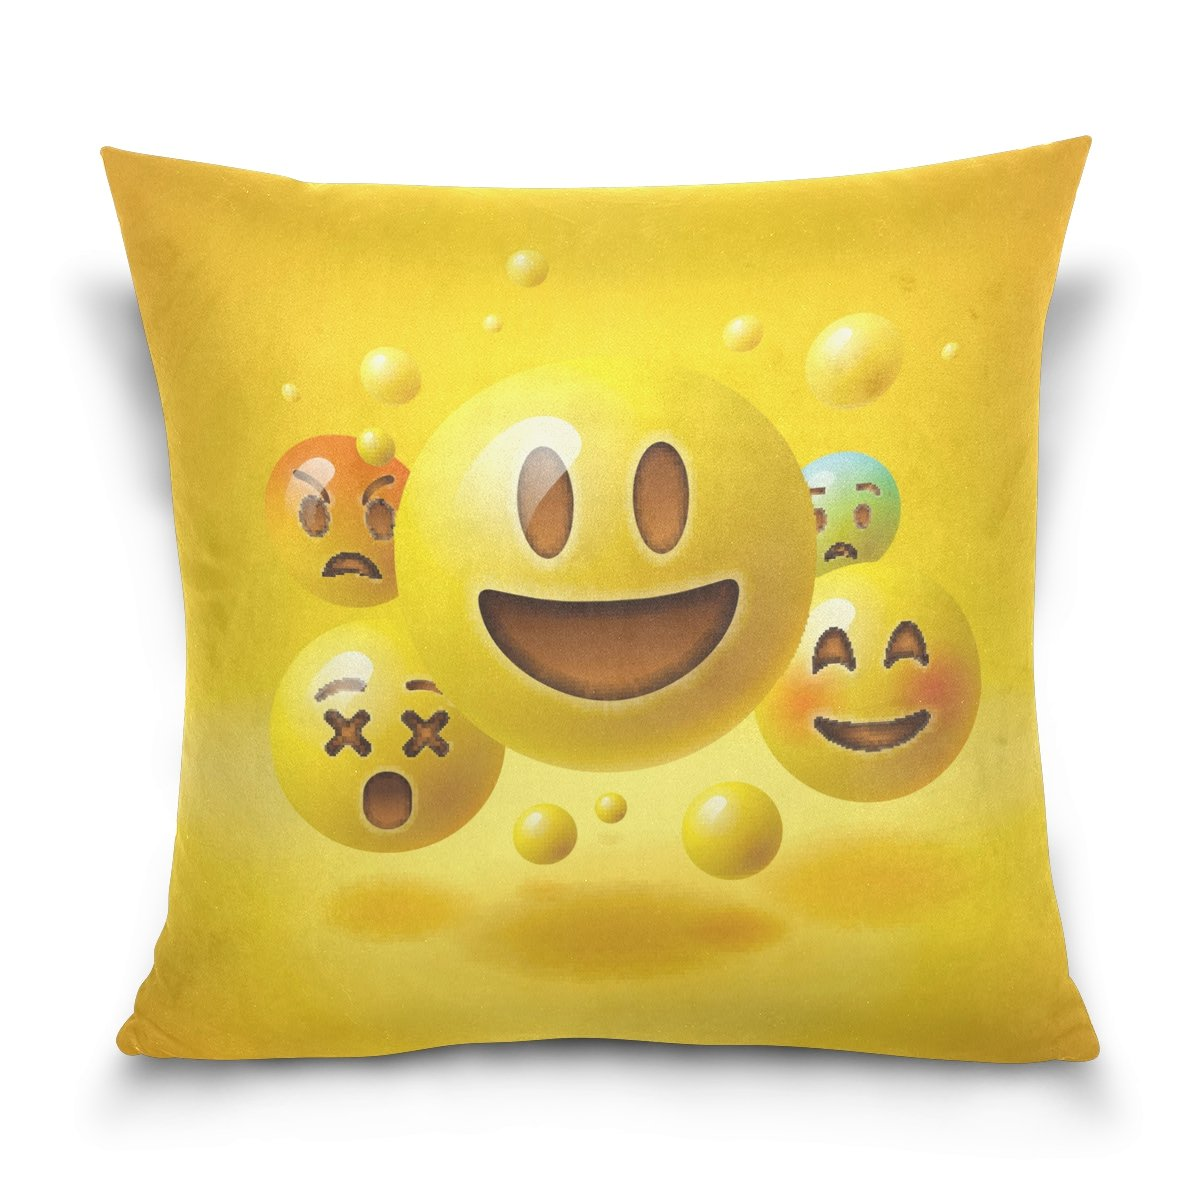 ALAZA Smiley Emoticons Emoji Cotton Pillowcase 20 X 20 Inches Twin Sides, Cute Cartoon Emoji Pillow Case Sham Cover Protector Decorative for Home Hotel Couch Ded